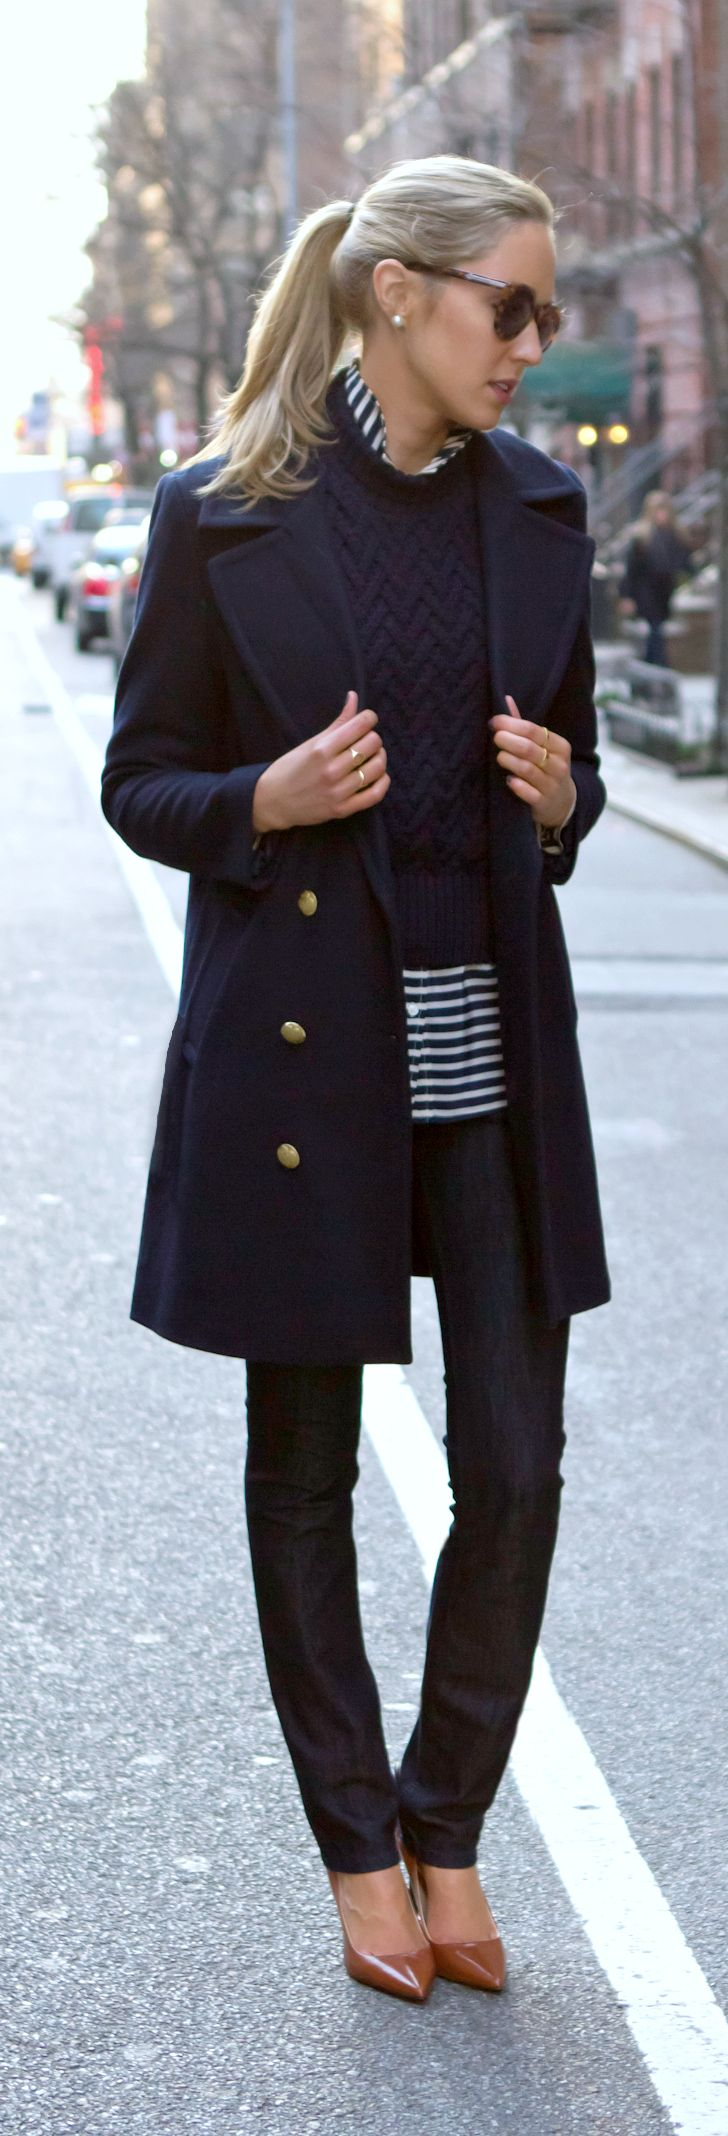 Navy coat, striped shirt, cableknit sweater...Love it all